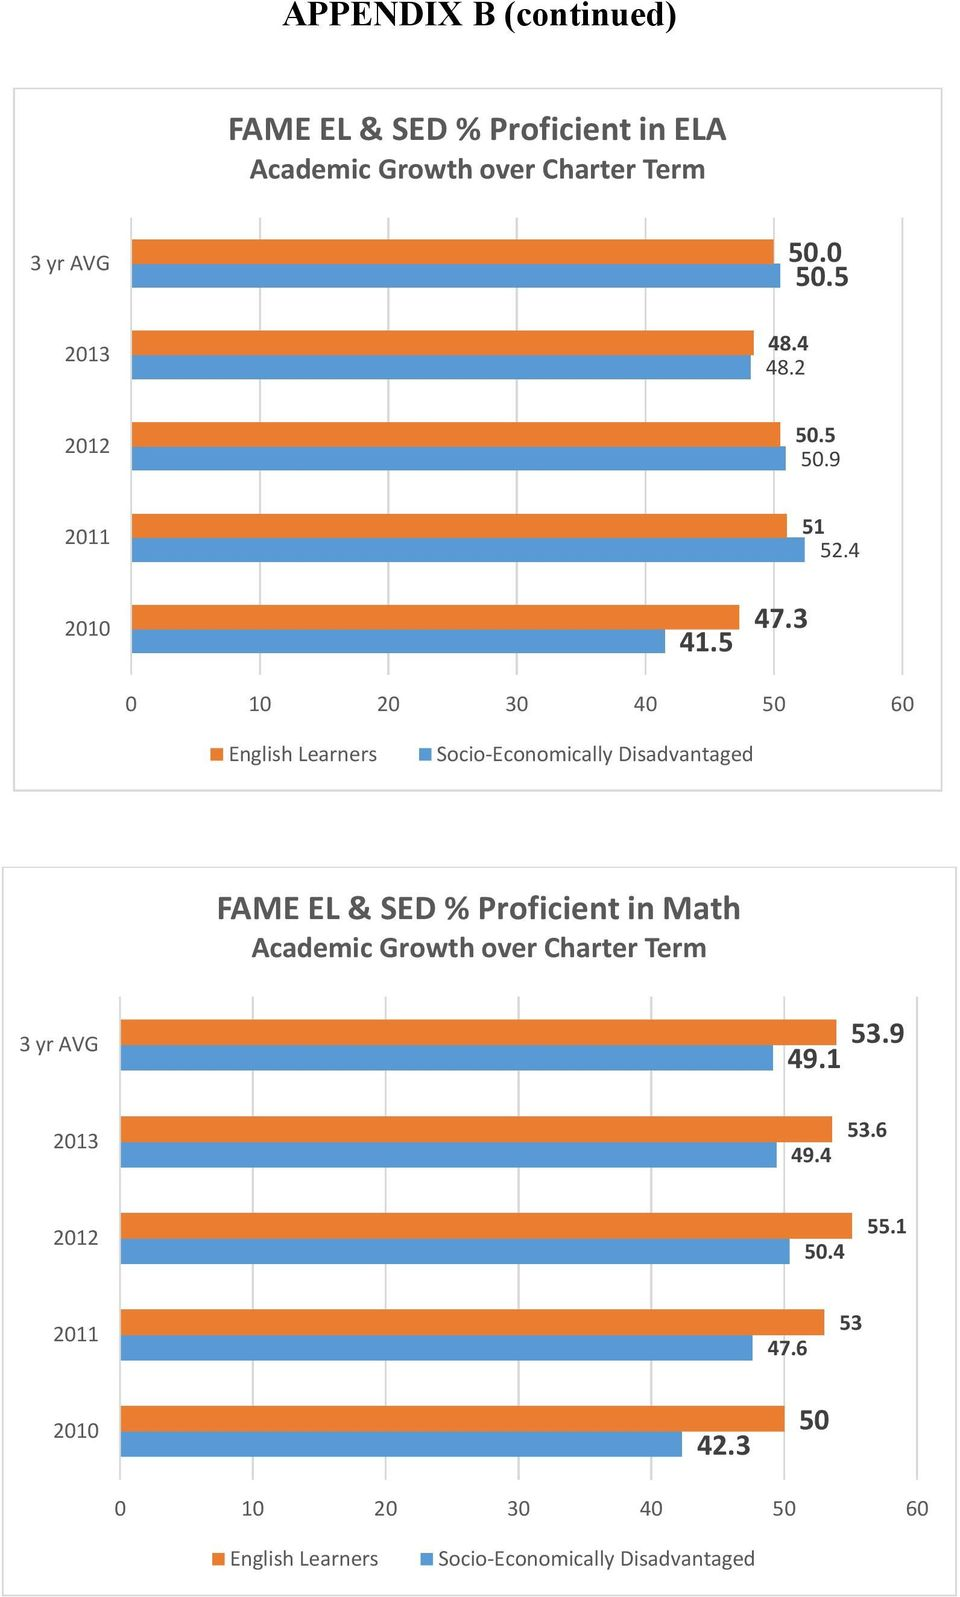 4 0 0 20 30 40 50 60 English Learners Socio-Economically Disadvantaged FAME EL & SED % Proficient in Math